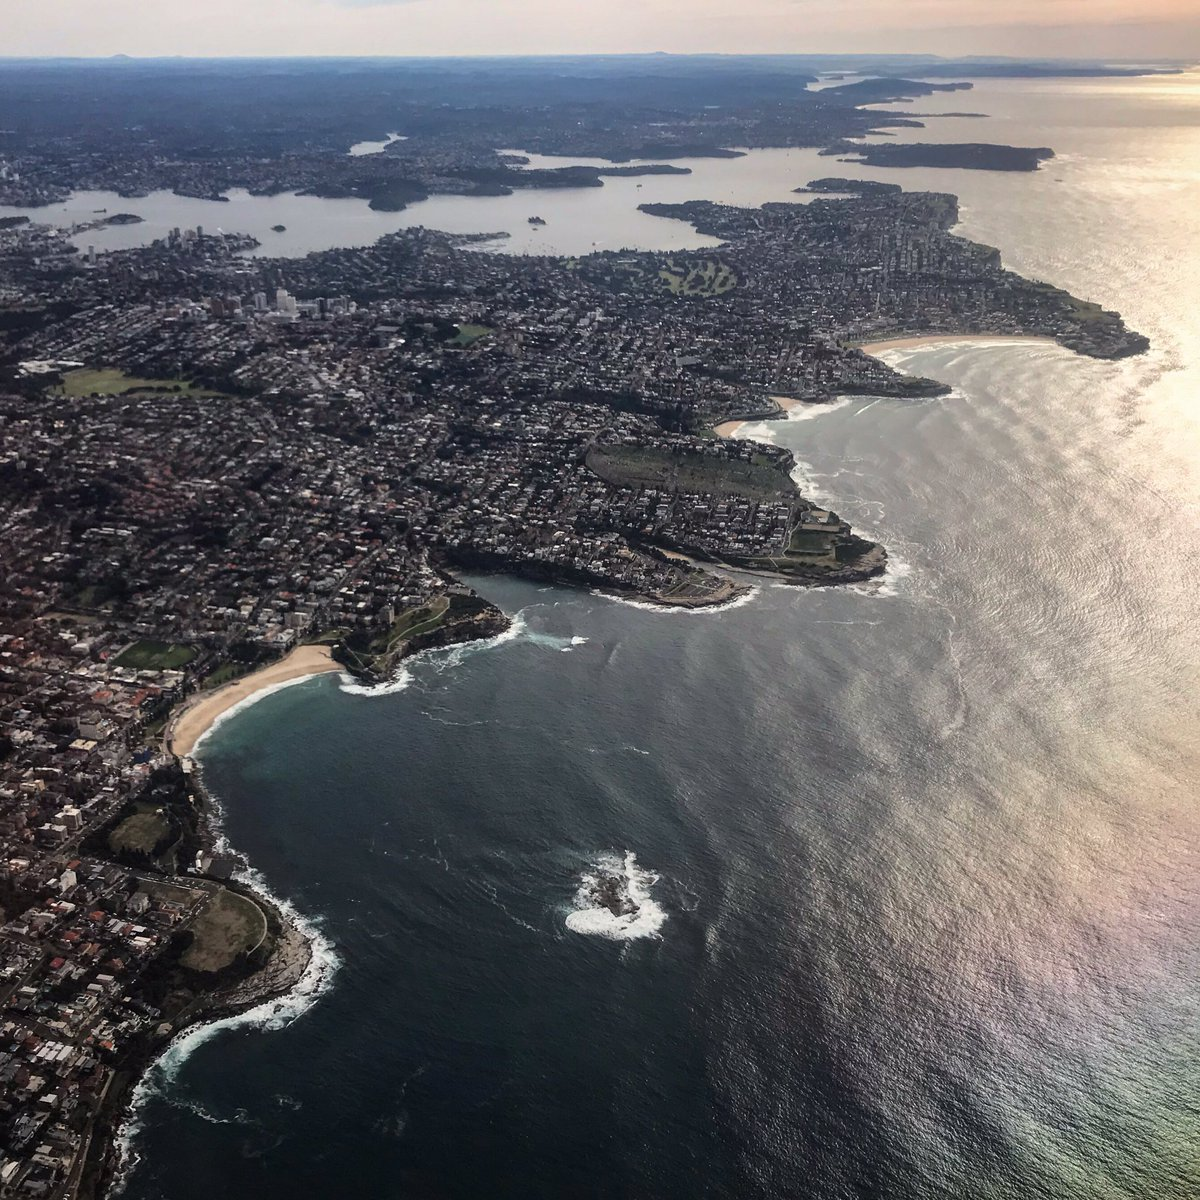 I just flew over my favourite #oceanswimming destination & in the background is one of the world's largest & most biologically diverse natural harbours. #weddingcakeisland #coogee #sydney #sydneyharbour #coastpic.twitter.com/vuMTf6PbYs